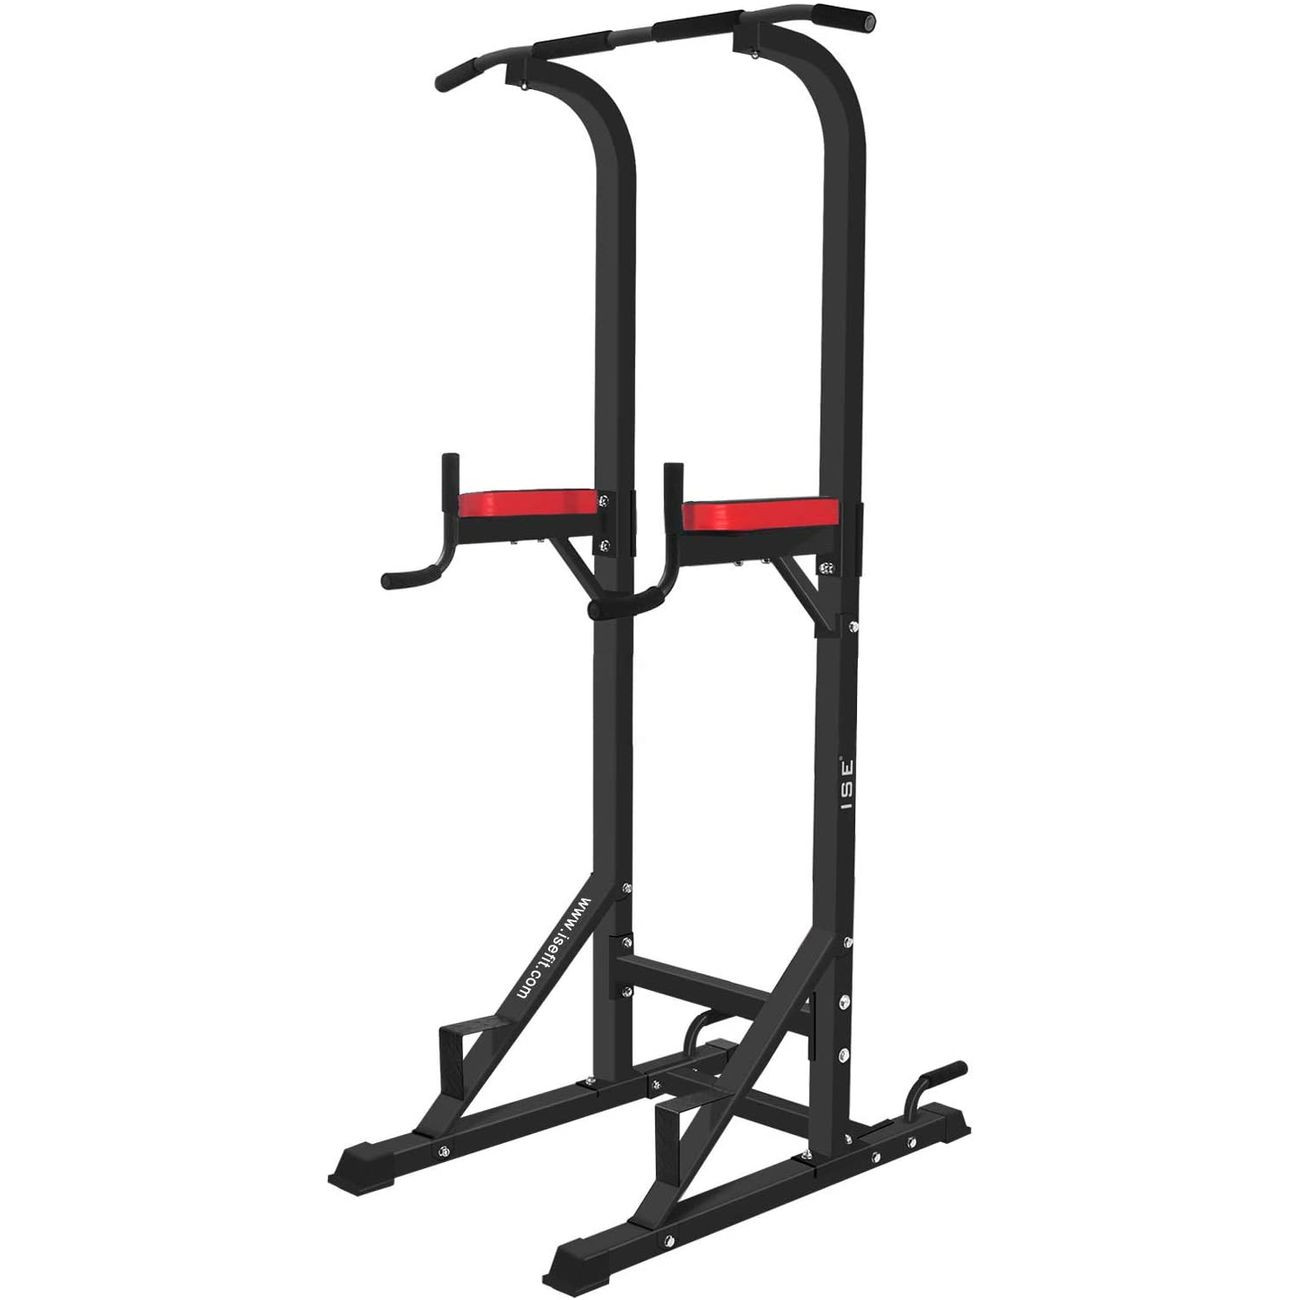 ISE ISE Chaise Romaine Station Traction dips Multifonctions Barre de Traction dips Banc de Musculation Power Tower SY-5607